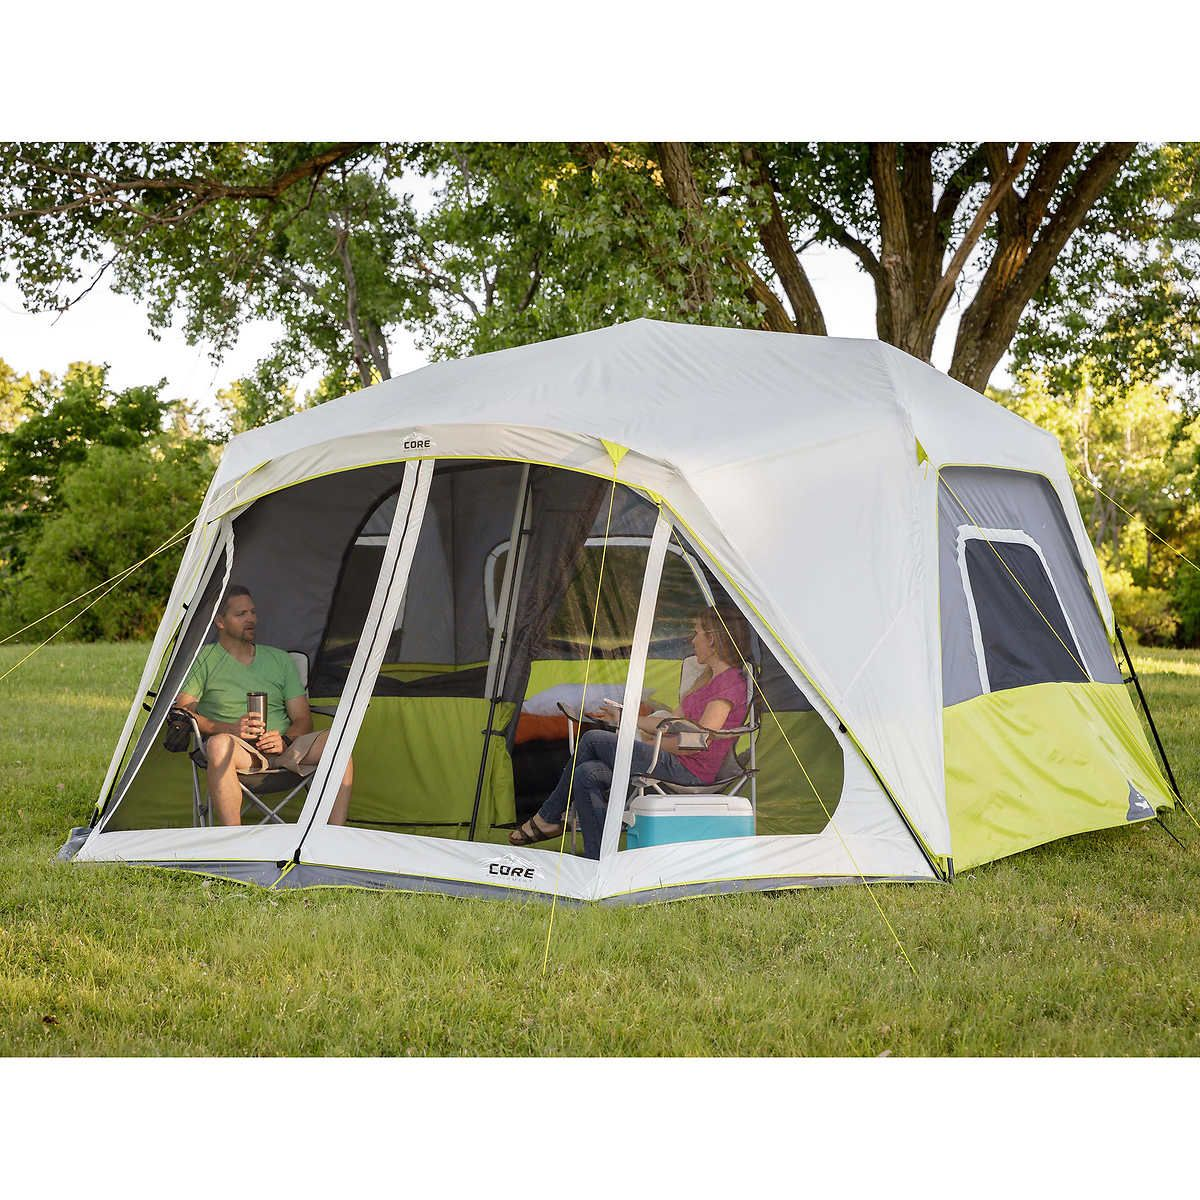 Core 10 Person Instant Cabin Tent With Screen Room Wish